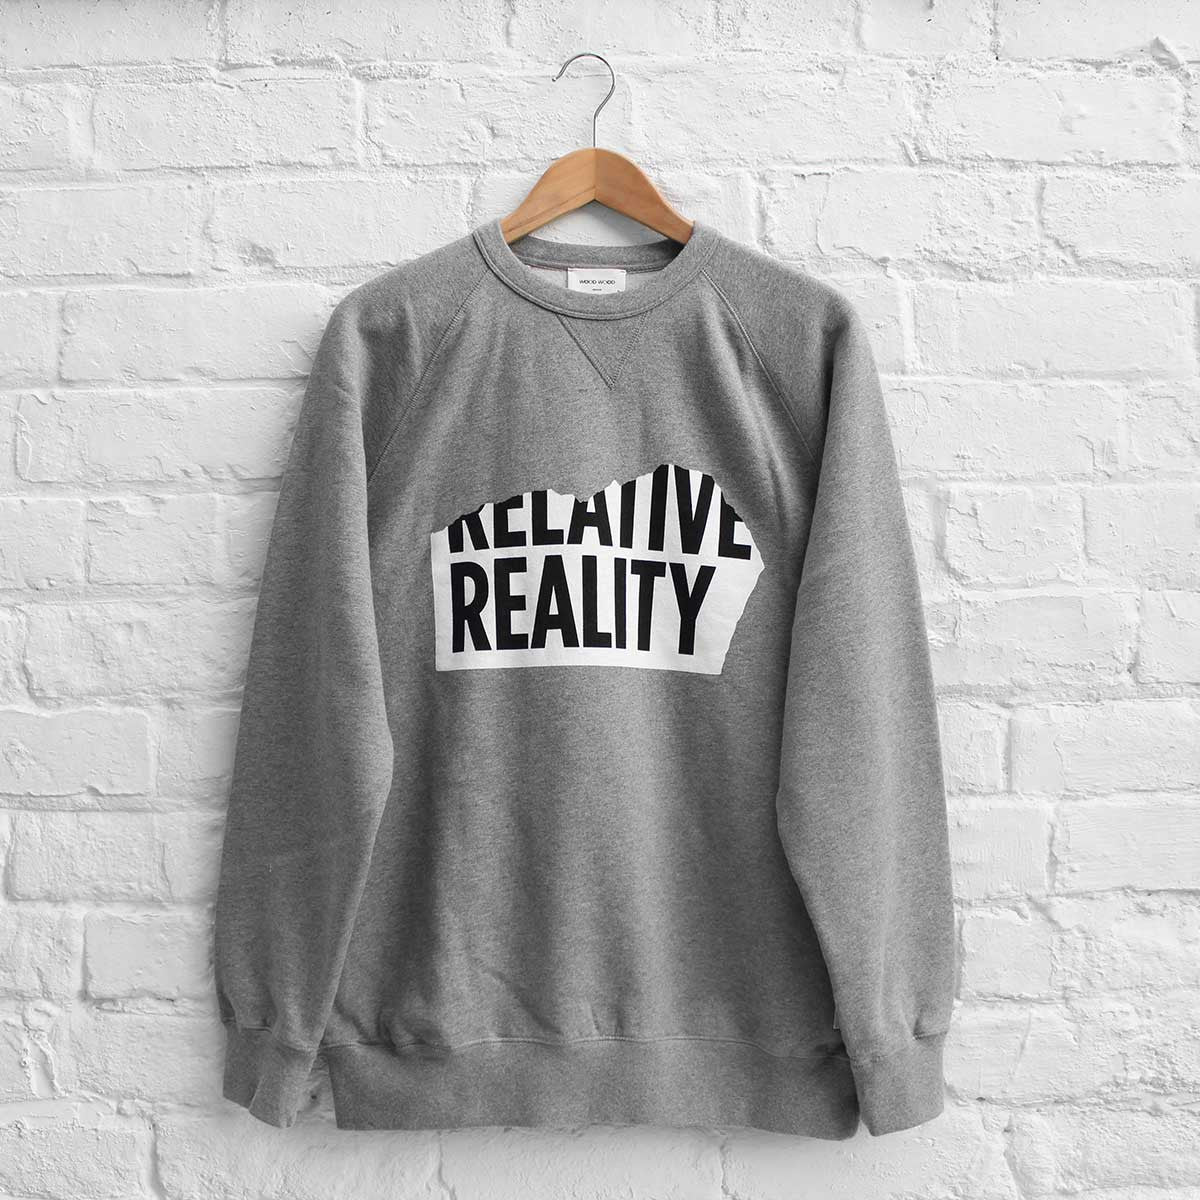 Wood Wood Hester Sweatshirt Grey Melange Relative